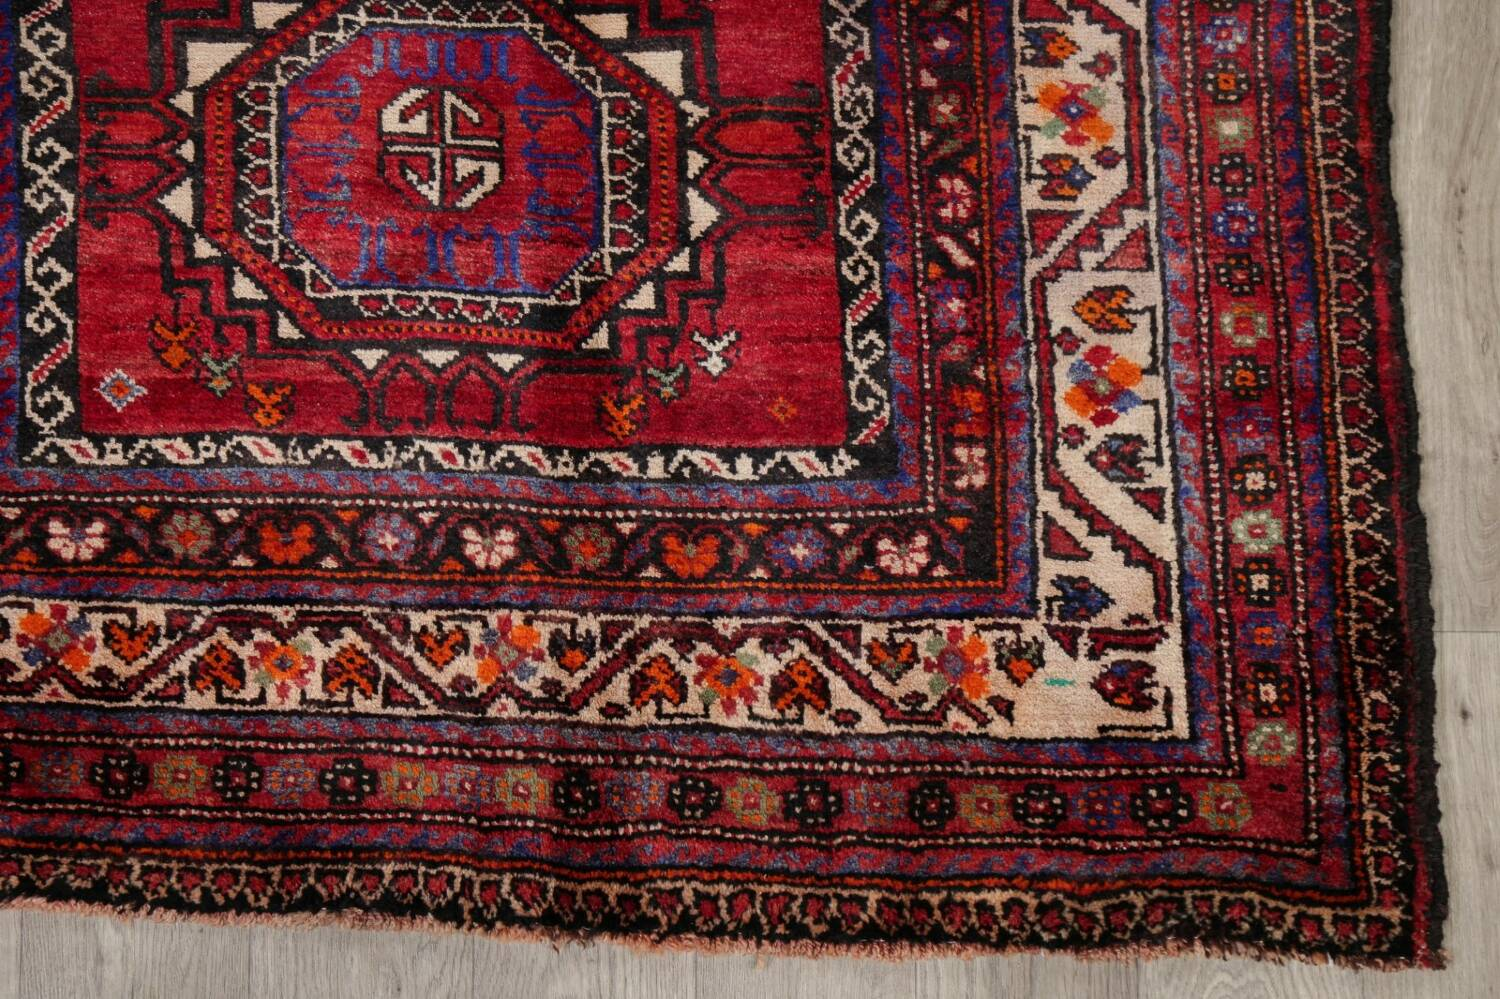 Vintage Geometric Red Malayer Persian Runner Rug 4x9 image 5